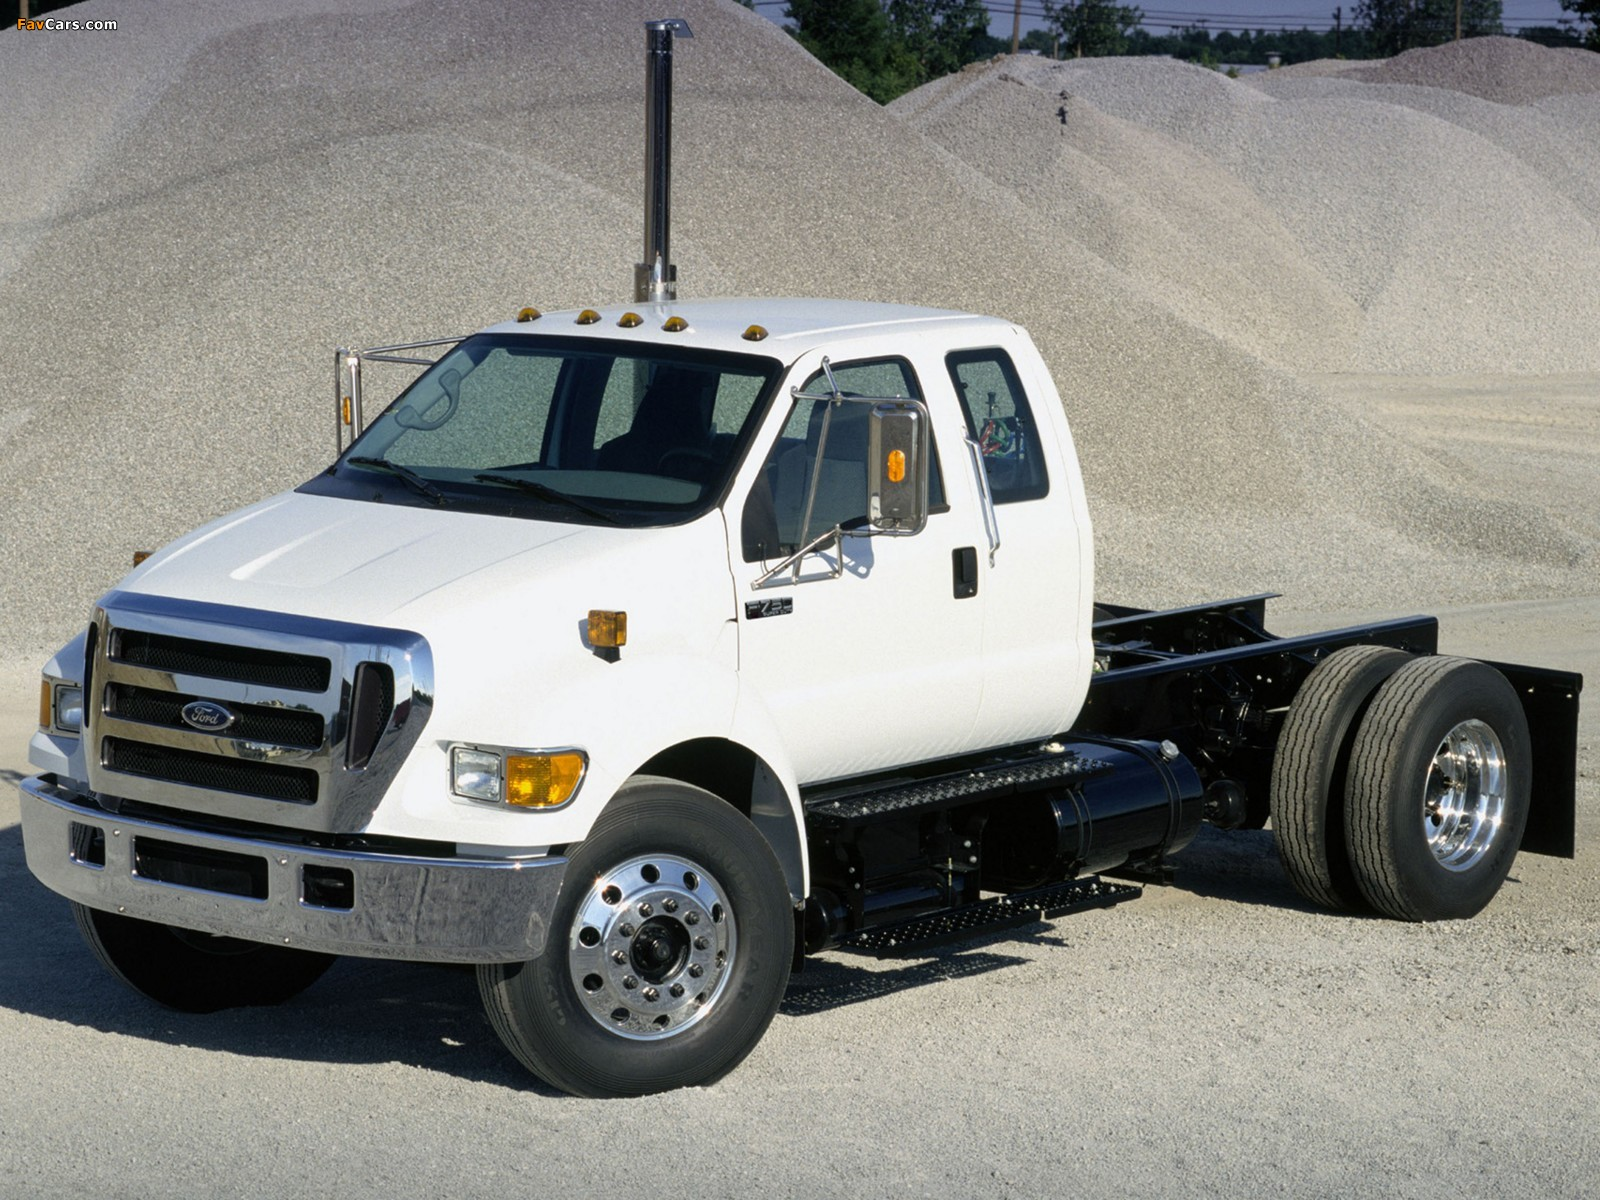 Ford F 750 Super Duty Extended Cab 2007 Photos 1600x1200